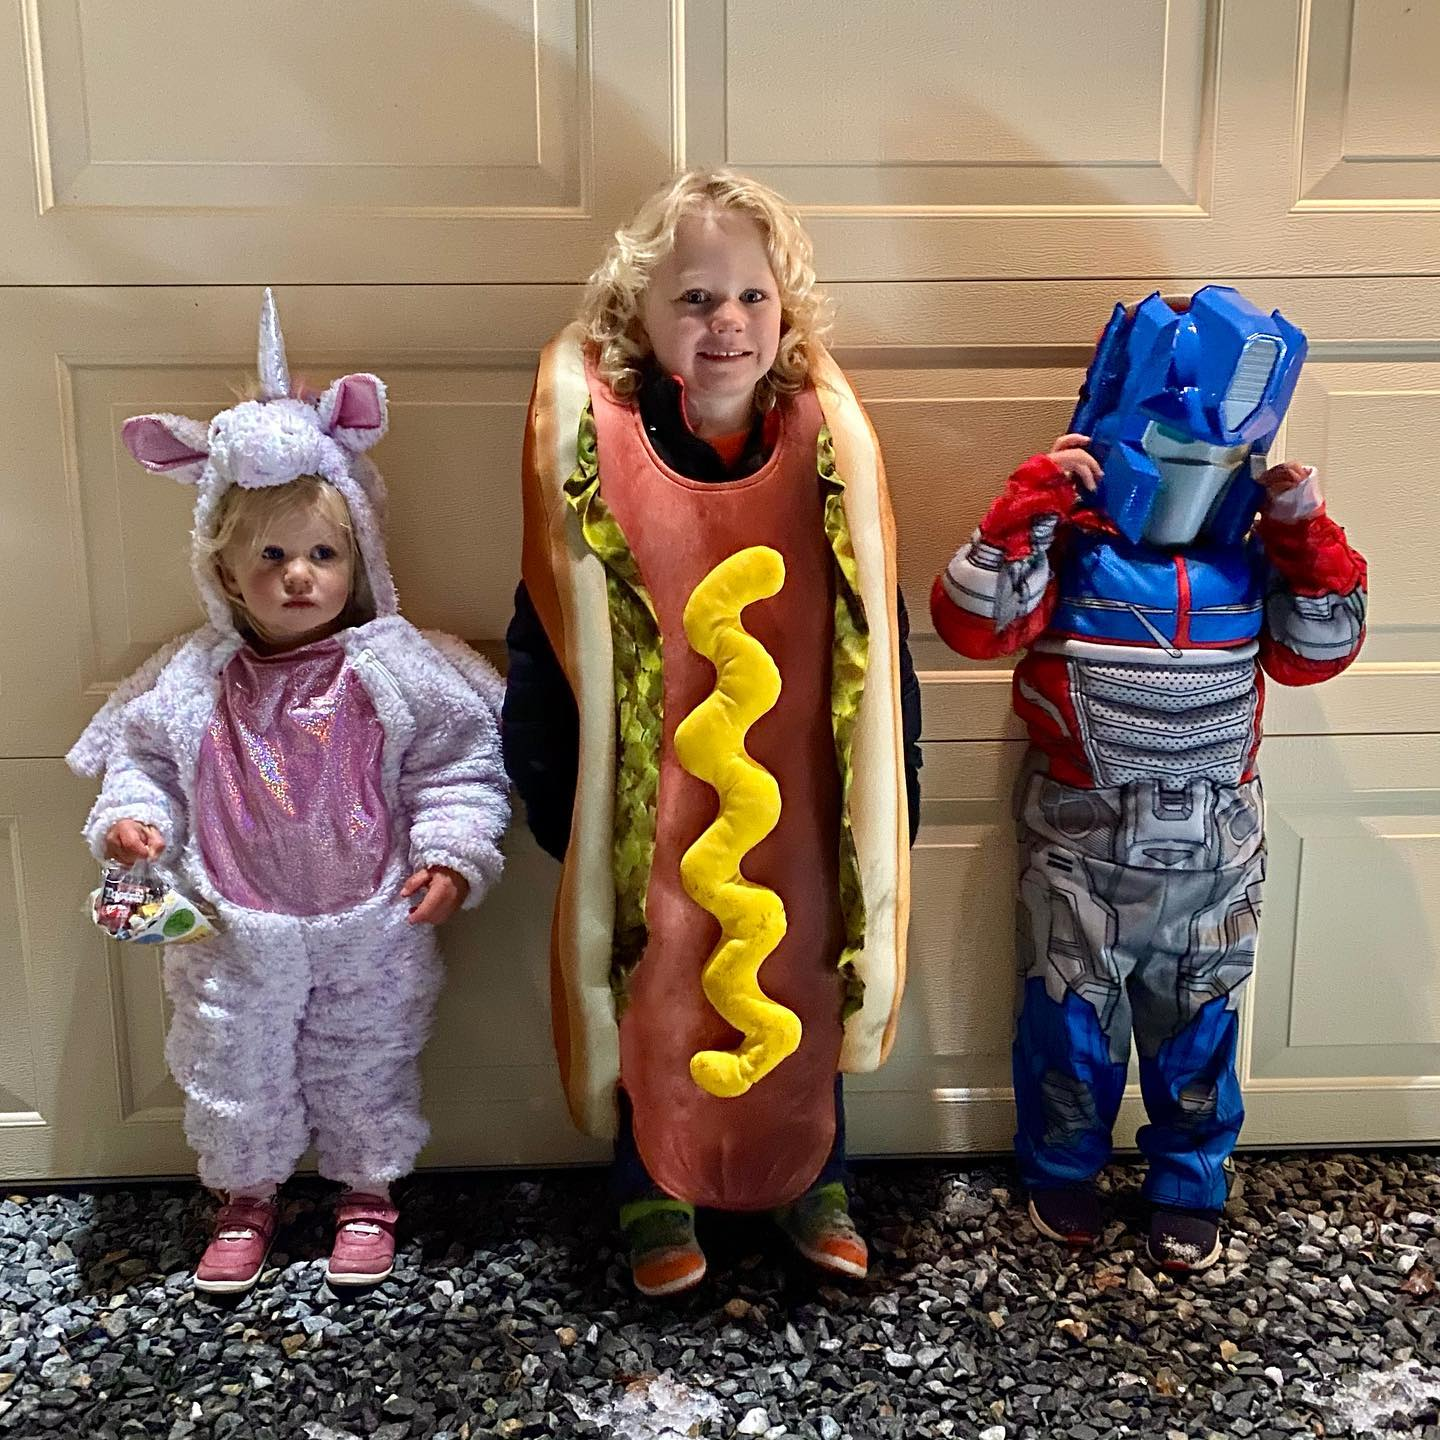 Violet, Desmond, and their sole quarantine buddy, Nolan. We had a safe and lovely Halloween while celebrating Katie's 40th birthday.